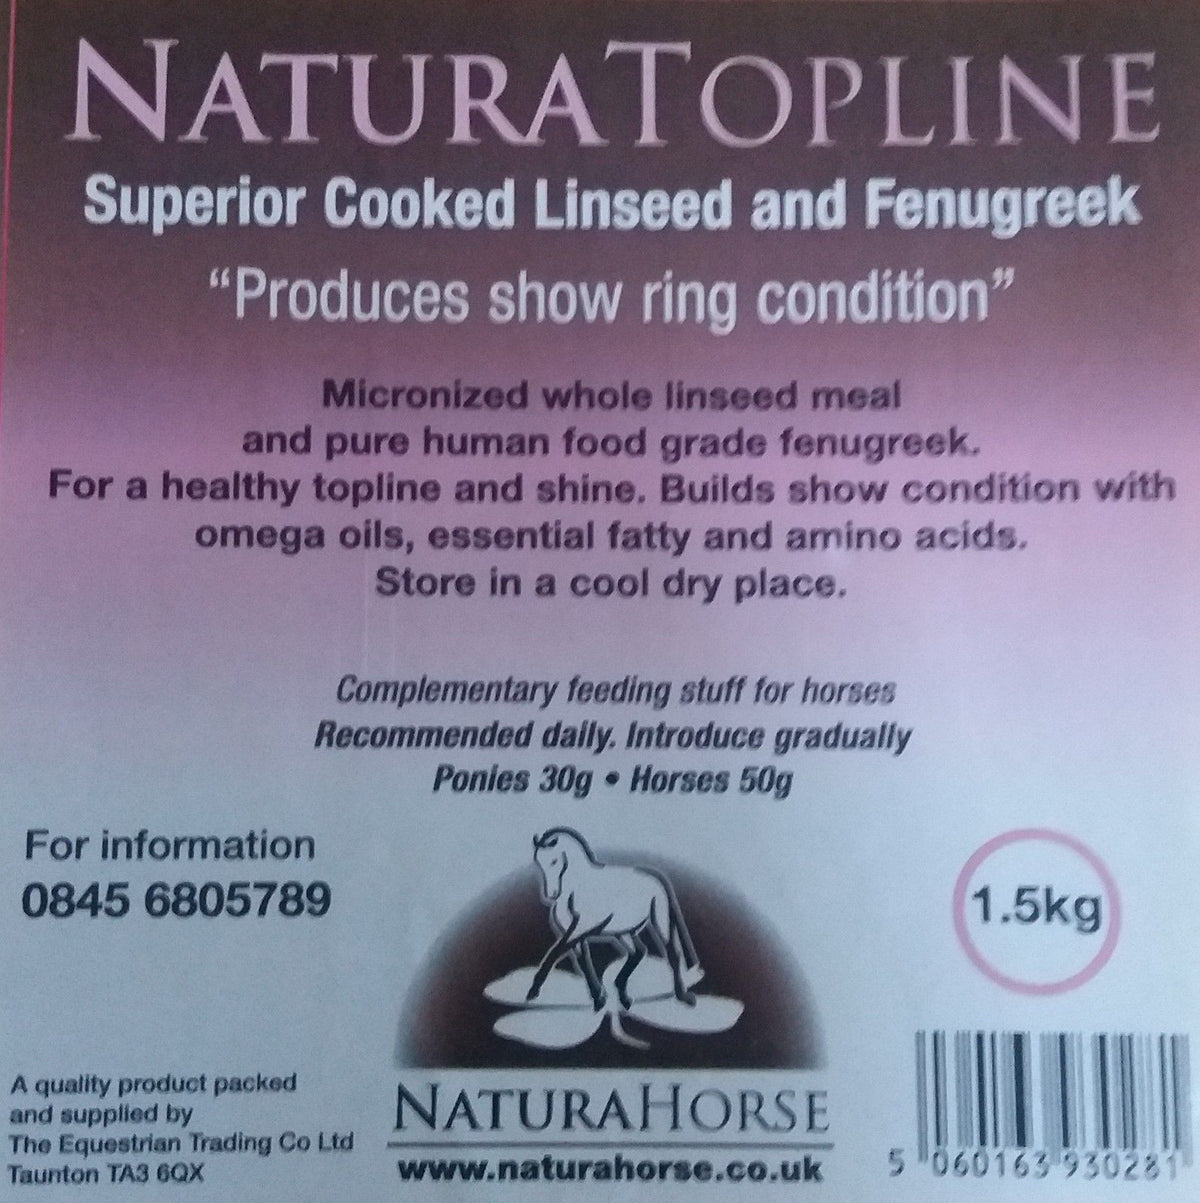 Natura Topline (Linseed & Fenugreek)